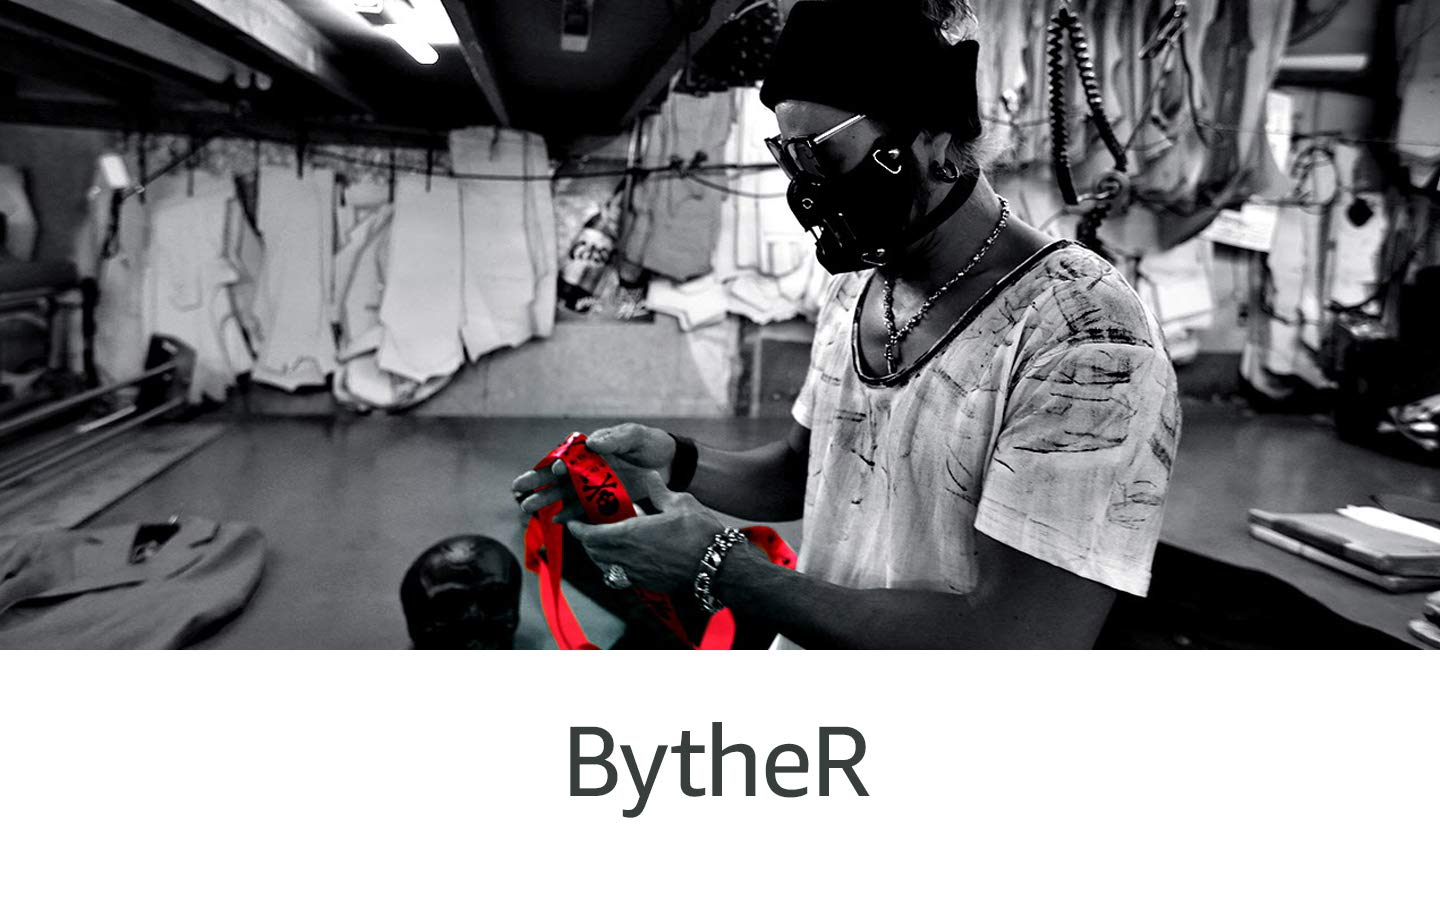 BytheR